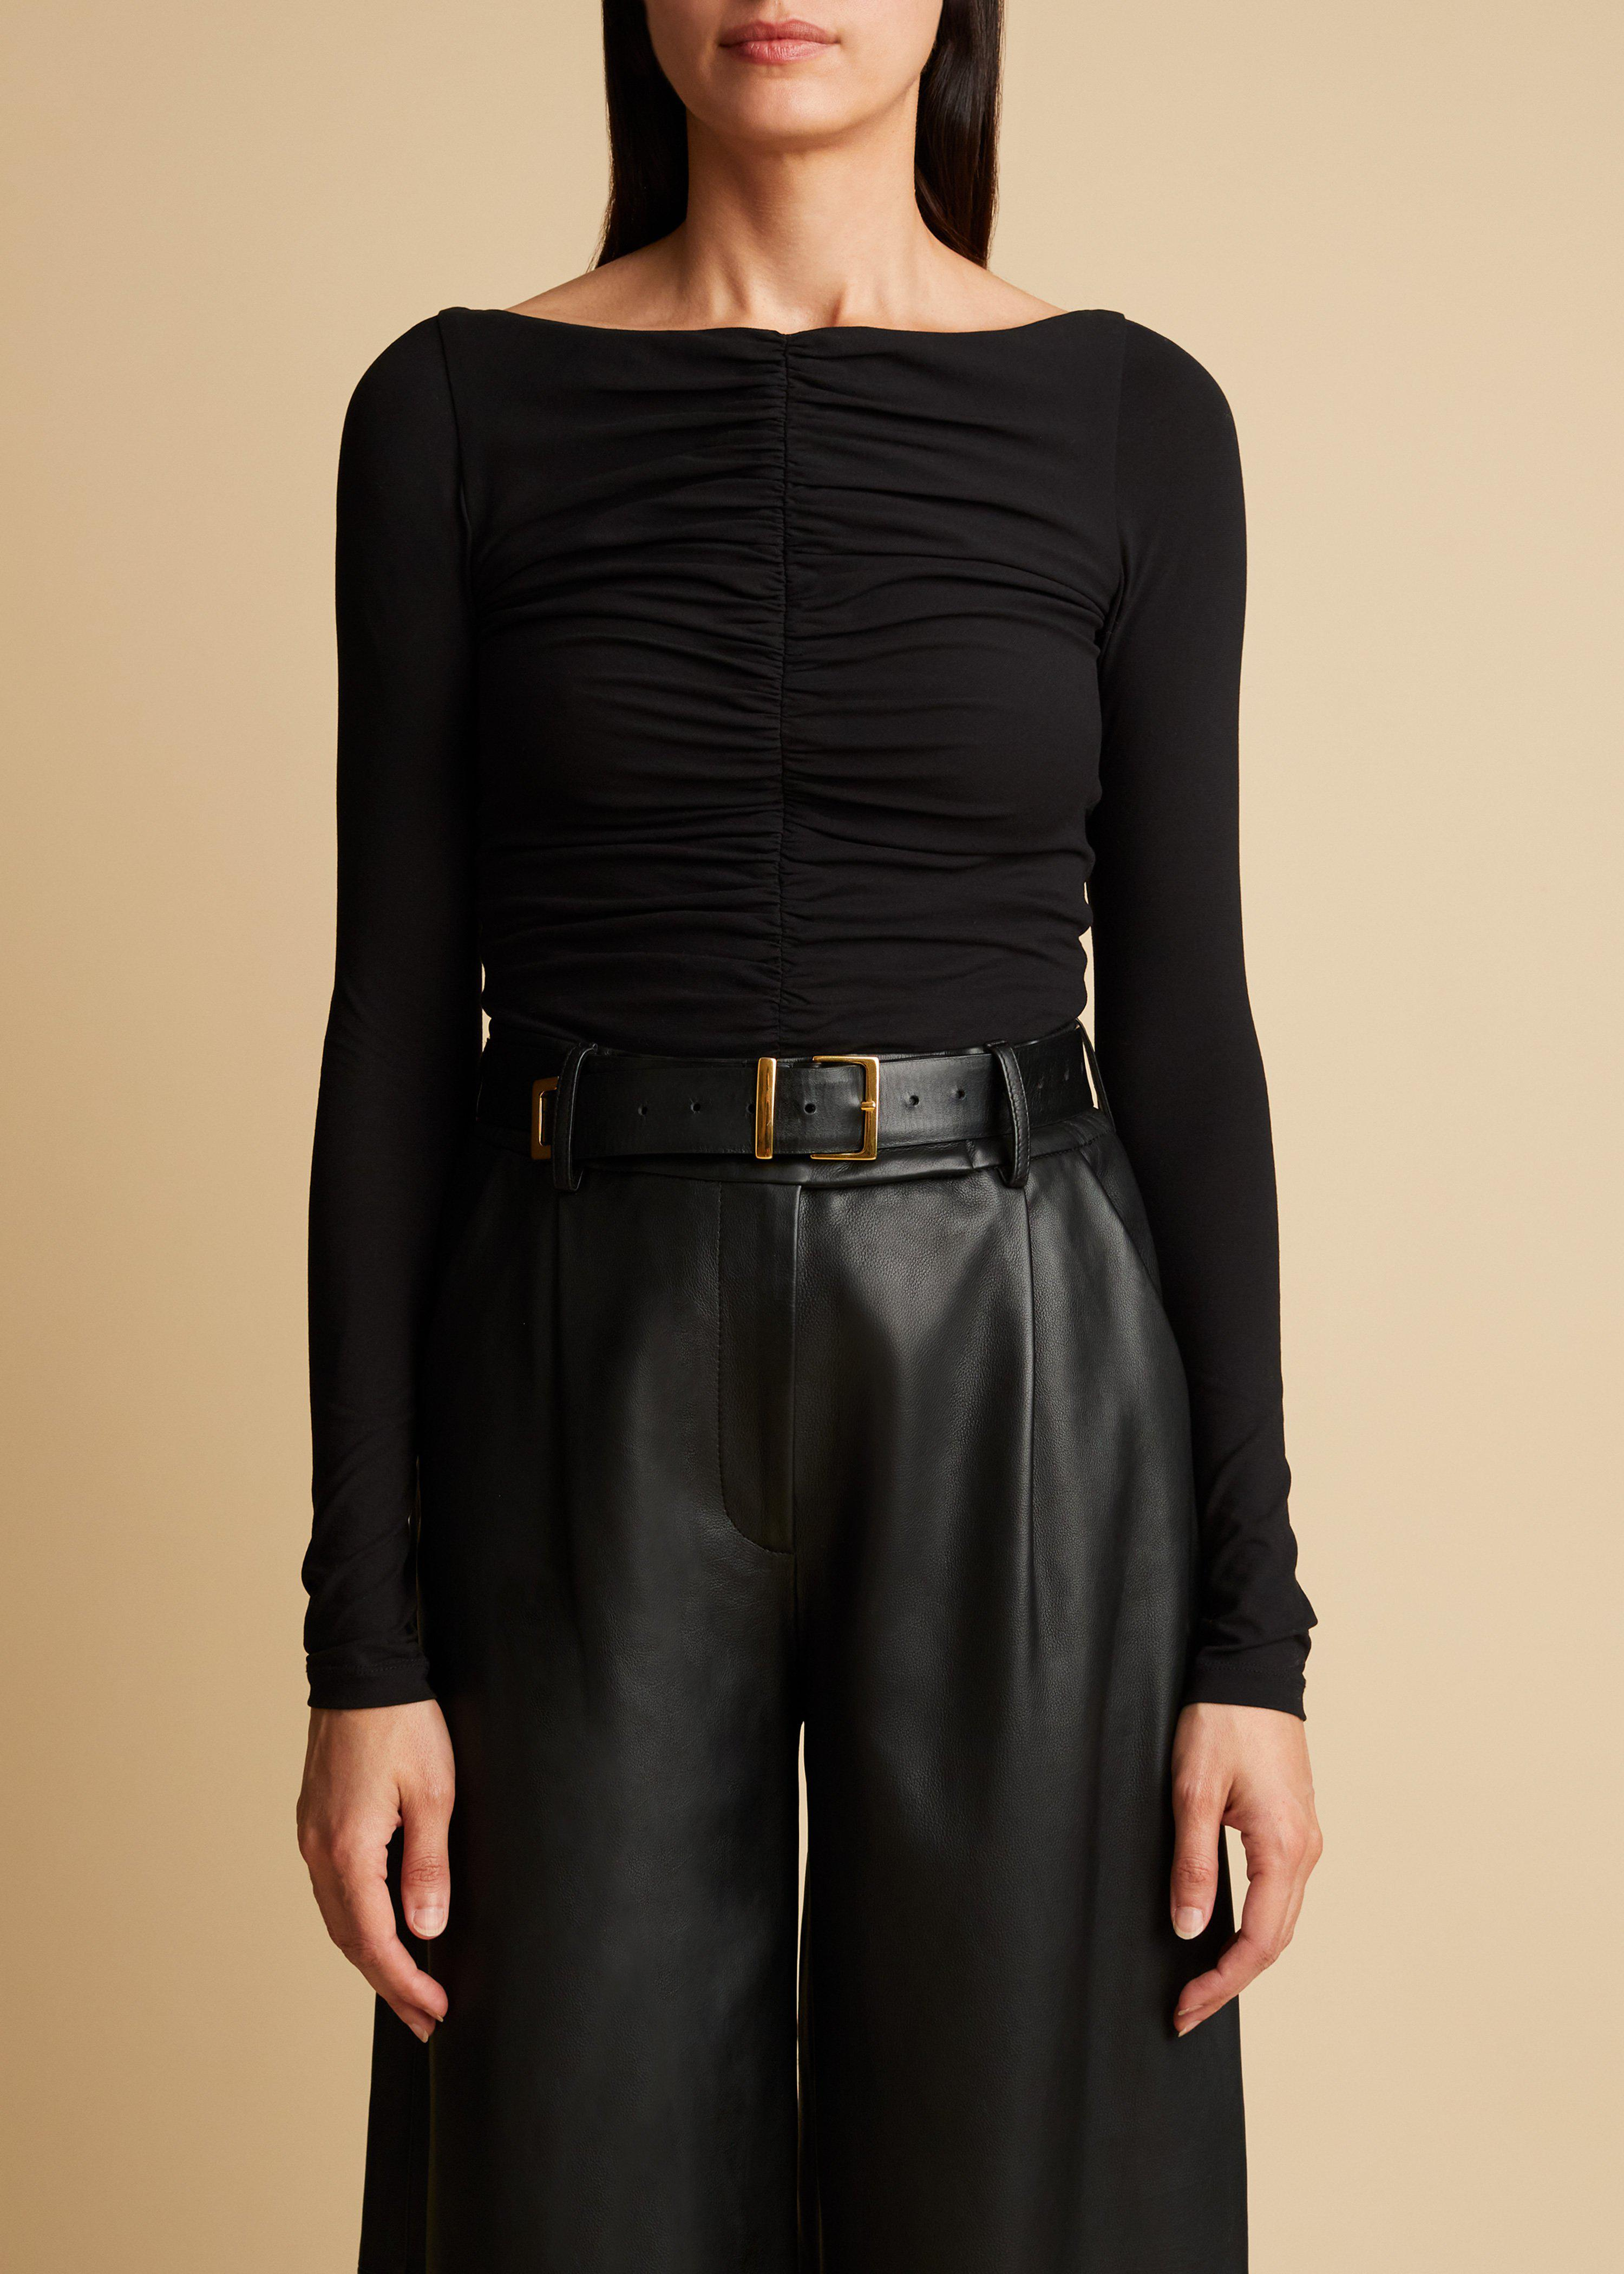 The Lance Top in Black